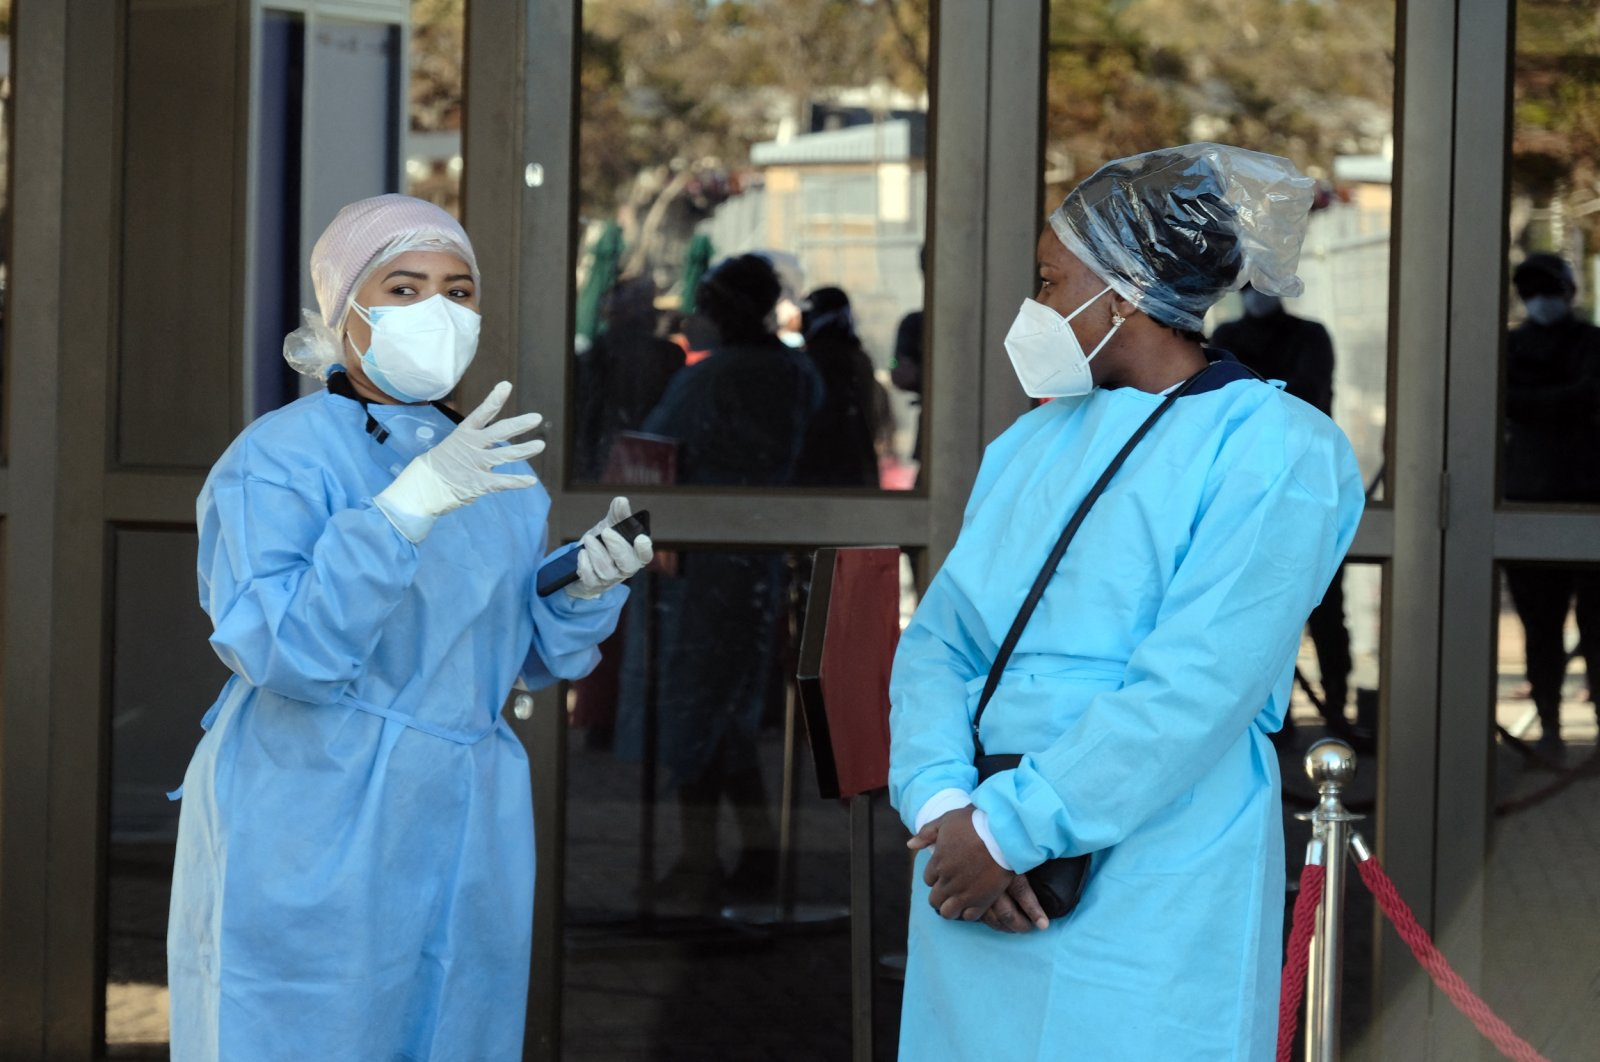 Health officials at the Nasrec quarantine in Johannesburg, South Africa, July 03, 2020. (Reuters Photo)